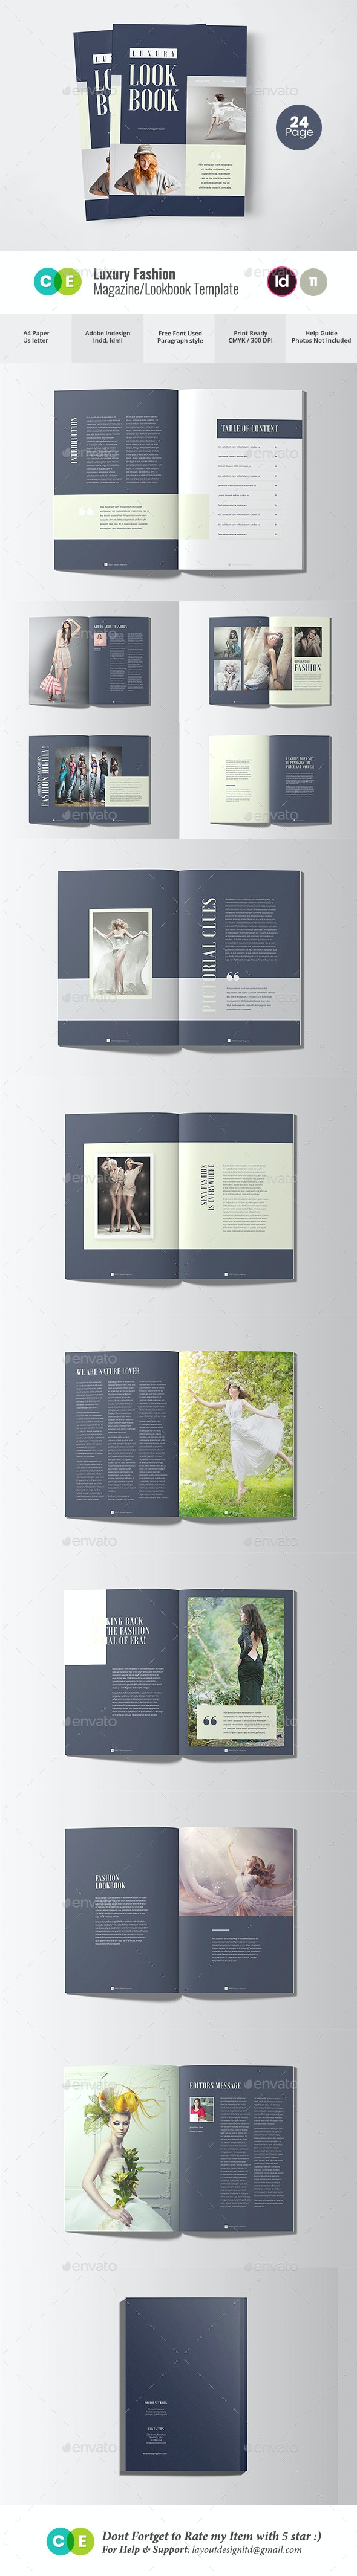 Luxury Fashion Magazine Lookbook V11 - Magazines Print Templates